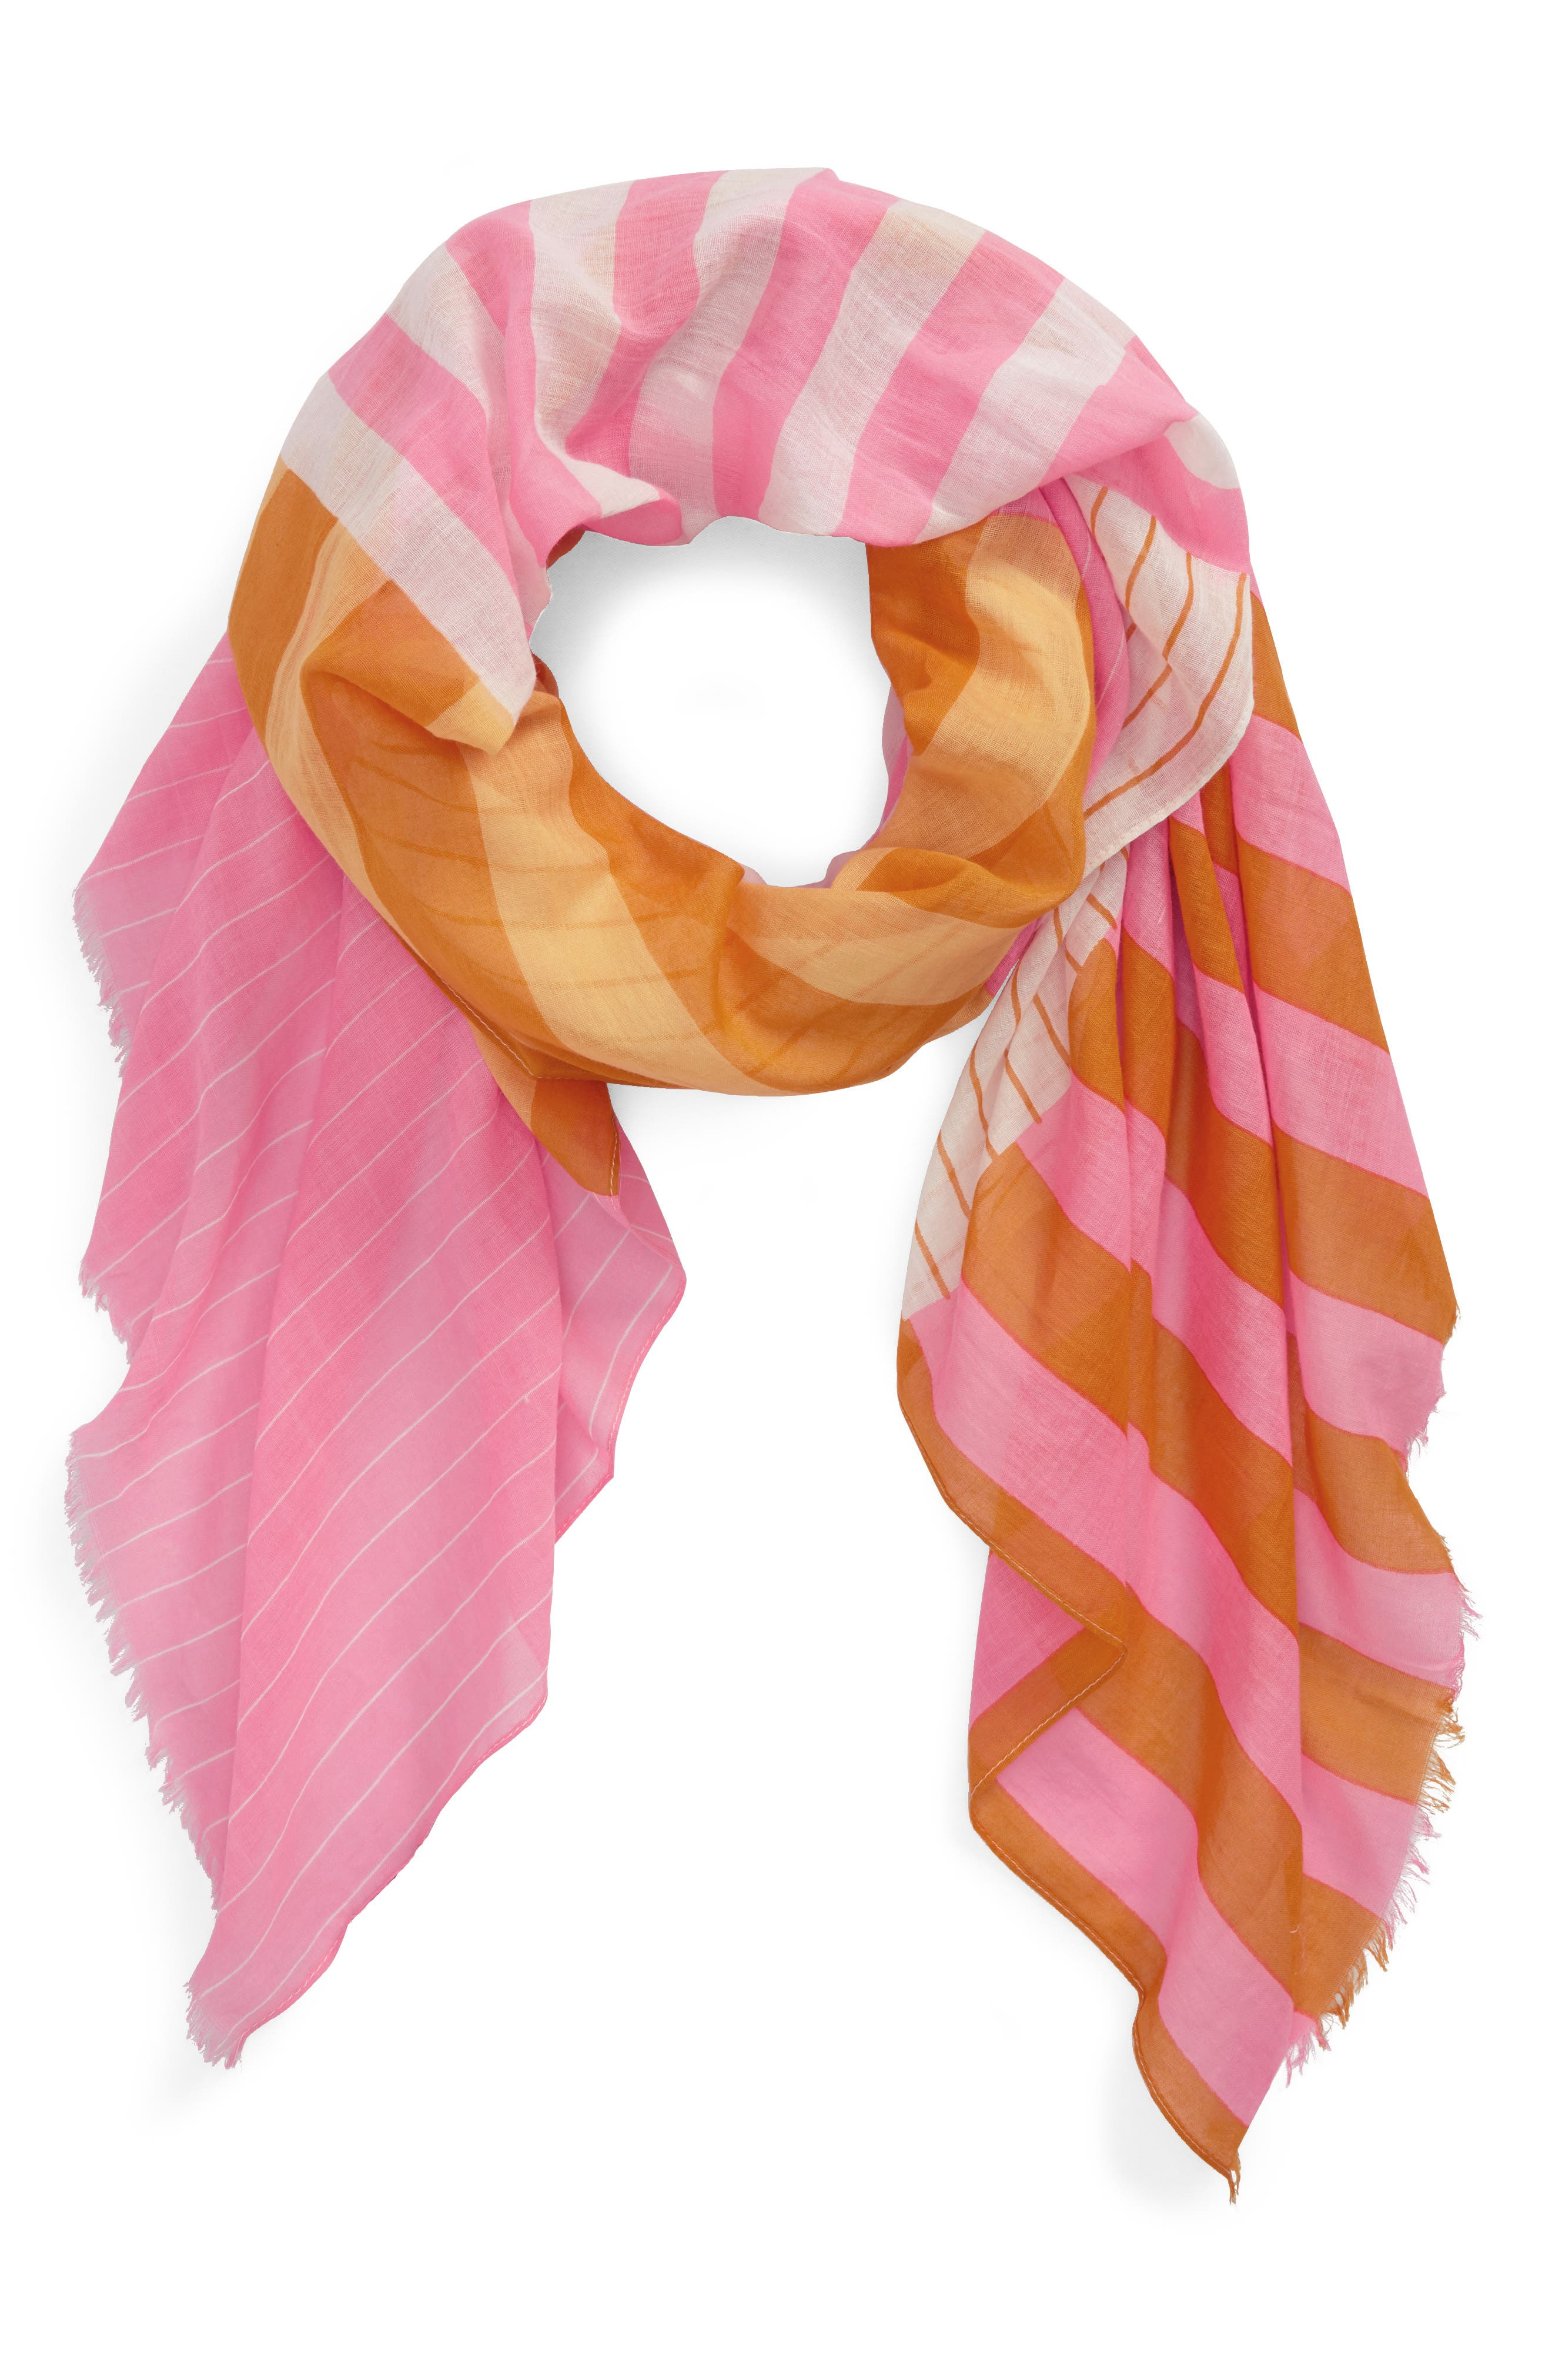 Fes Stripe Scarf,                             Main thumbnail 1, color,                             Gold/Pink/Cream